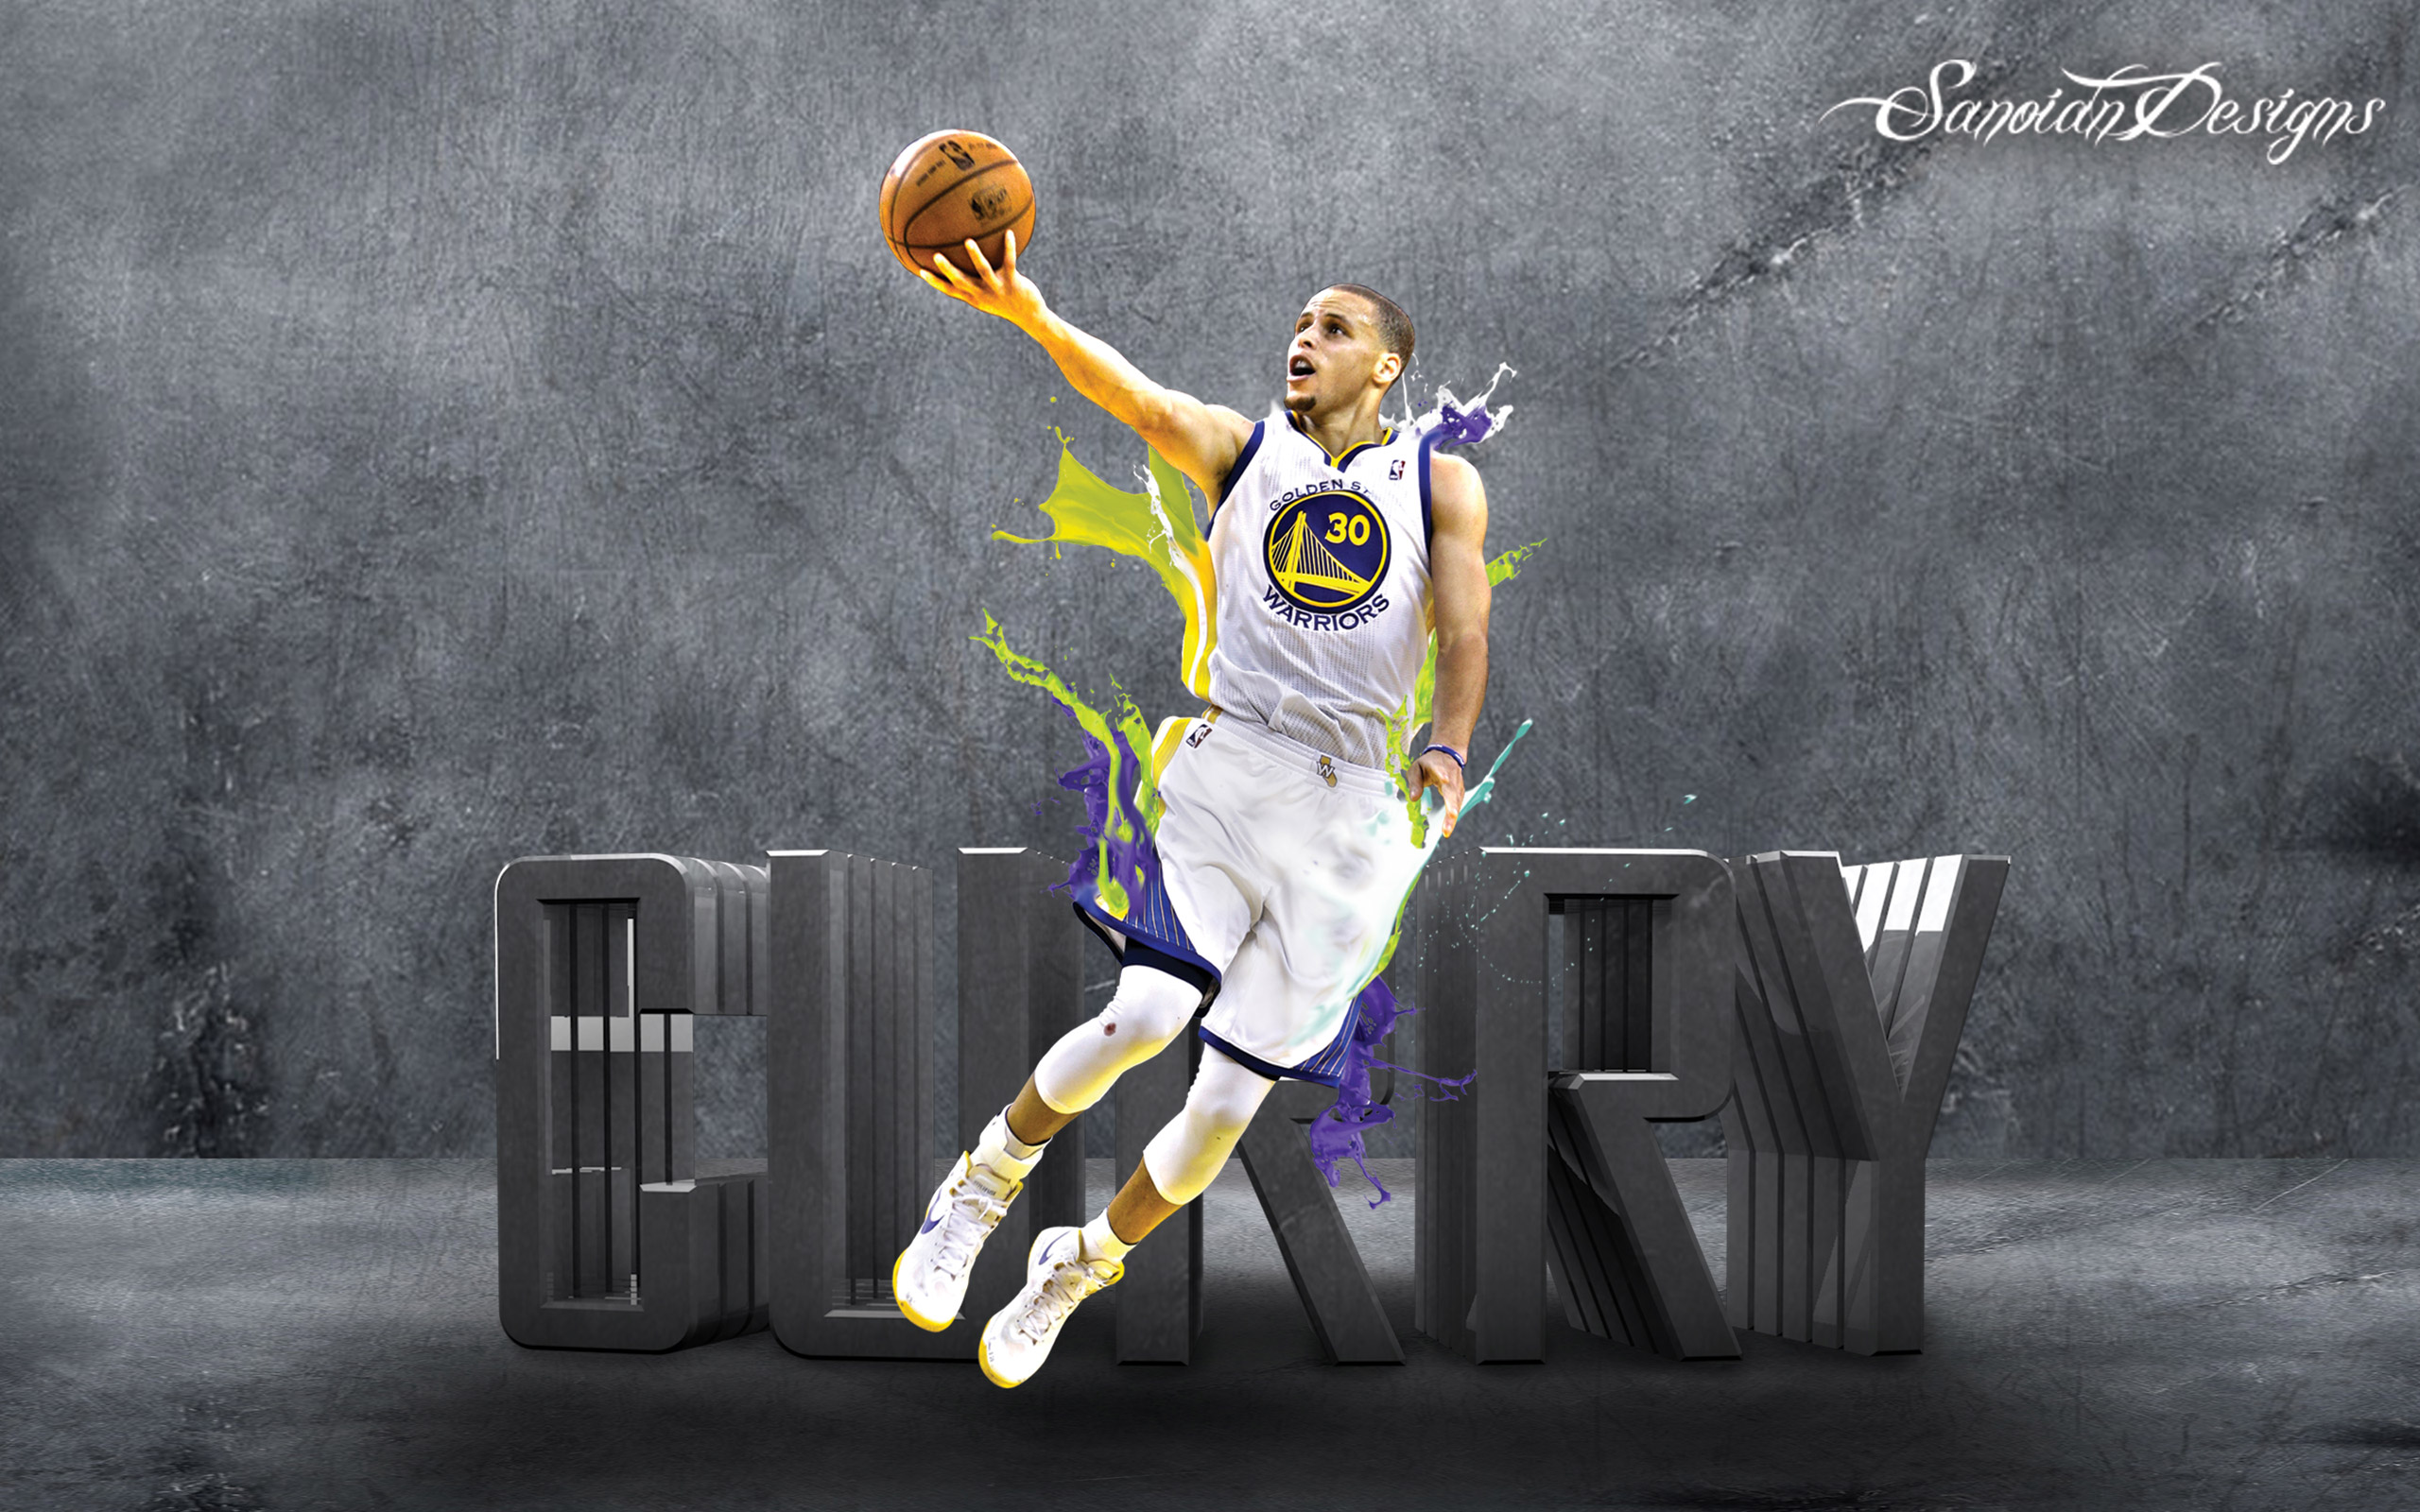 Steph Curry Jersey Wallpaper by cunningbaileycom 2560x1600